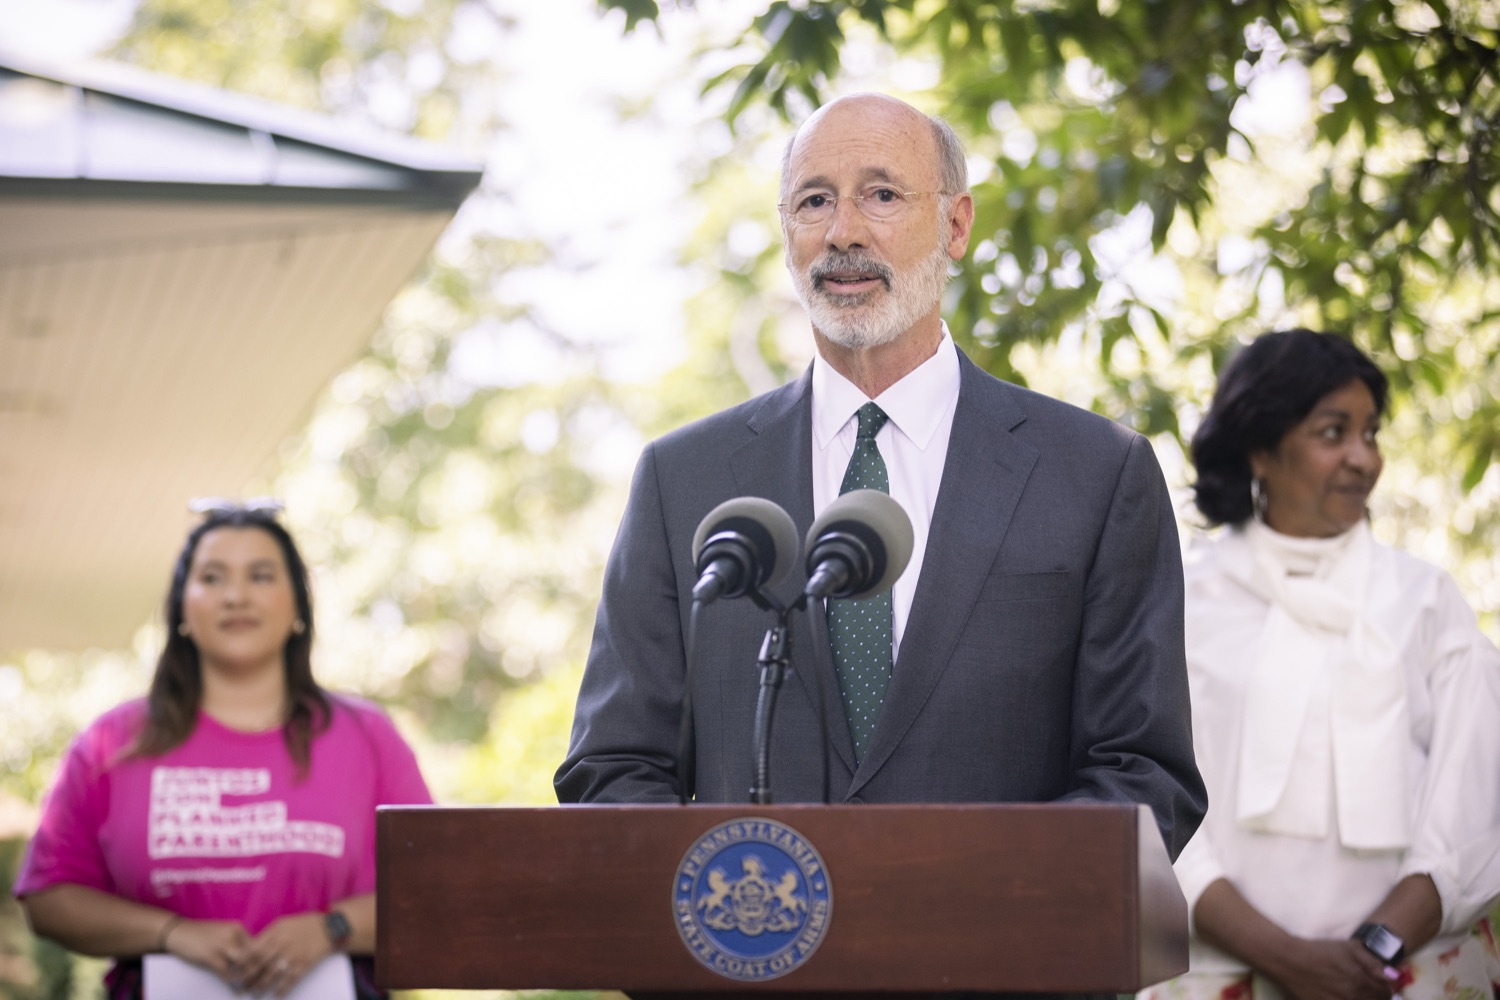 """<a href=""""https://filesource.wostreaming.net/commonwealthofpa/photo/18819_gov_reprodRights_dz_011.jpg"""" target=""""_blank"""">⇣Download Photo<br></a>Pennsylvania Governor Tom Wolf speaking with the press. Pennsylvania Governor Tom Wolf speaking with the press. Governor Wolf will discuss proposed anti-choice legislation that is moving through the House of Representatives and reaffirm that he will veto this damaging legislation.  JUNE 10, 2021 - PHILADELPHIA, PA"""